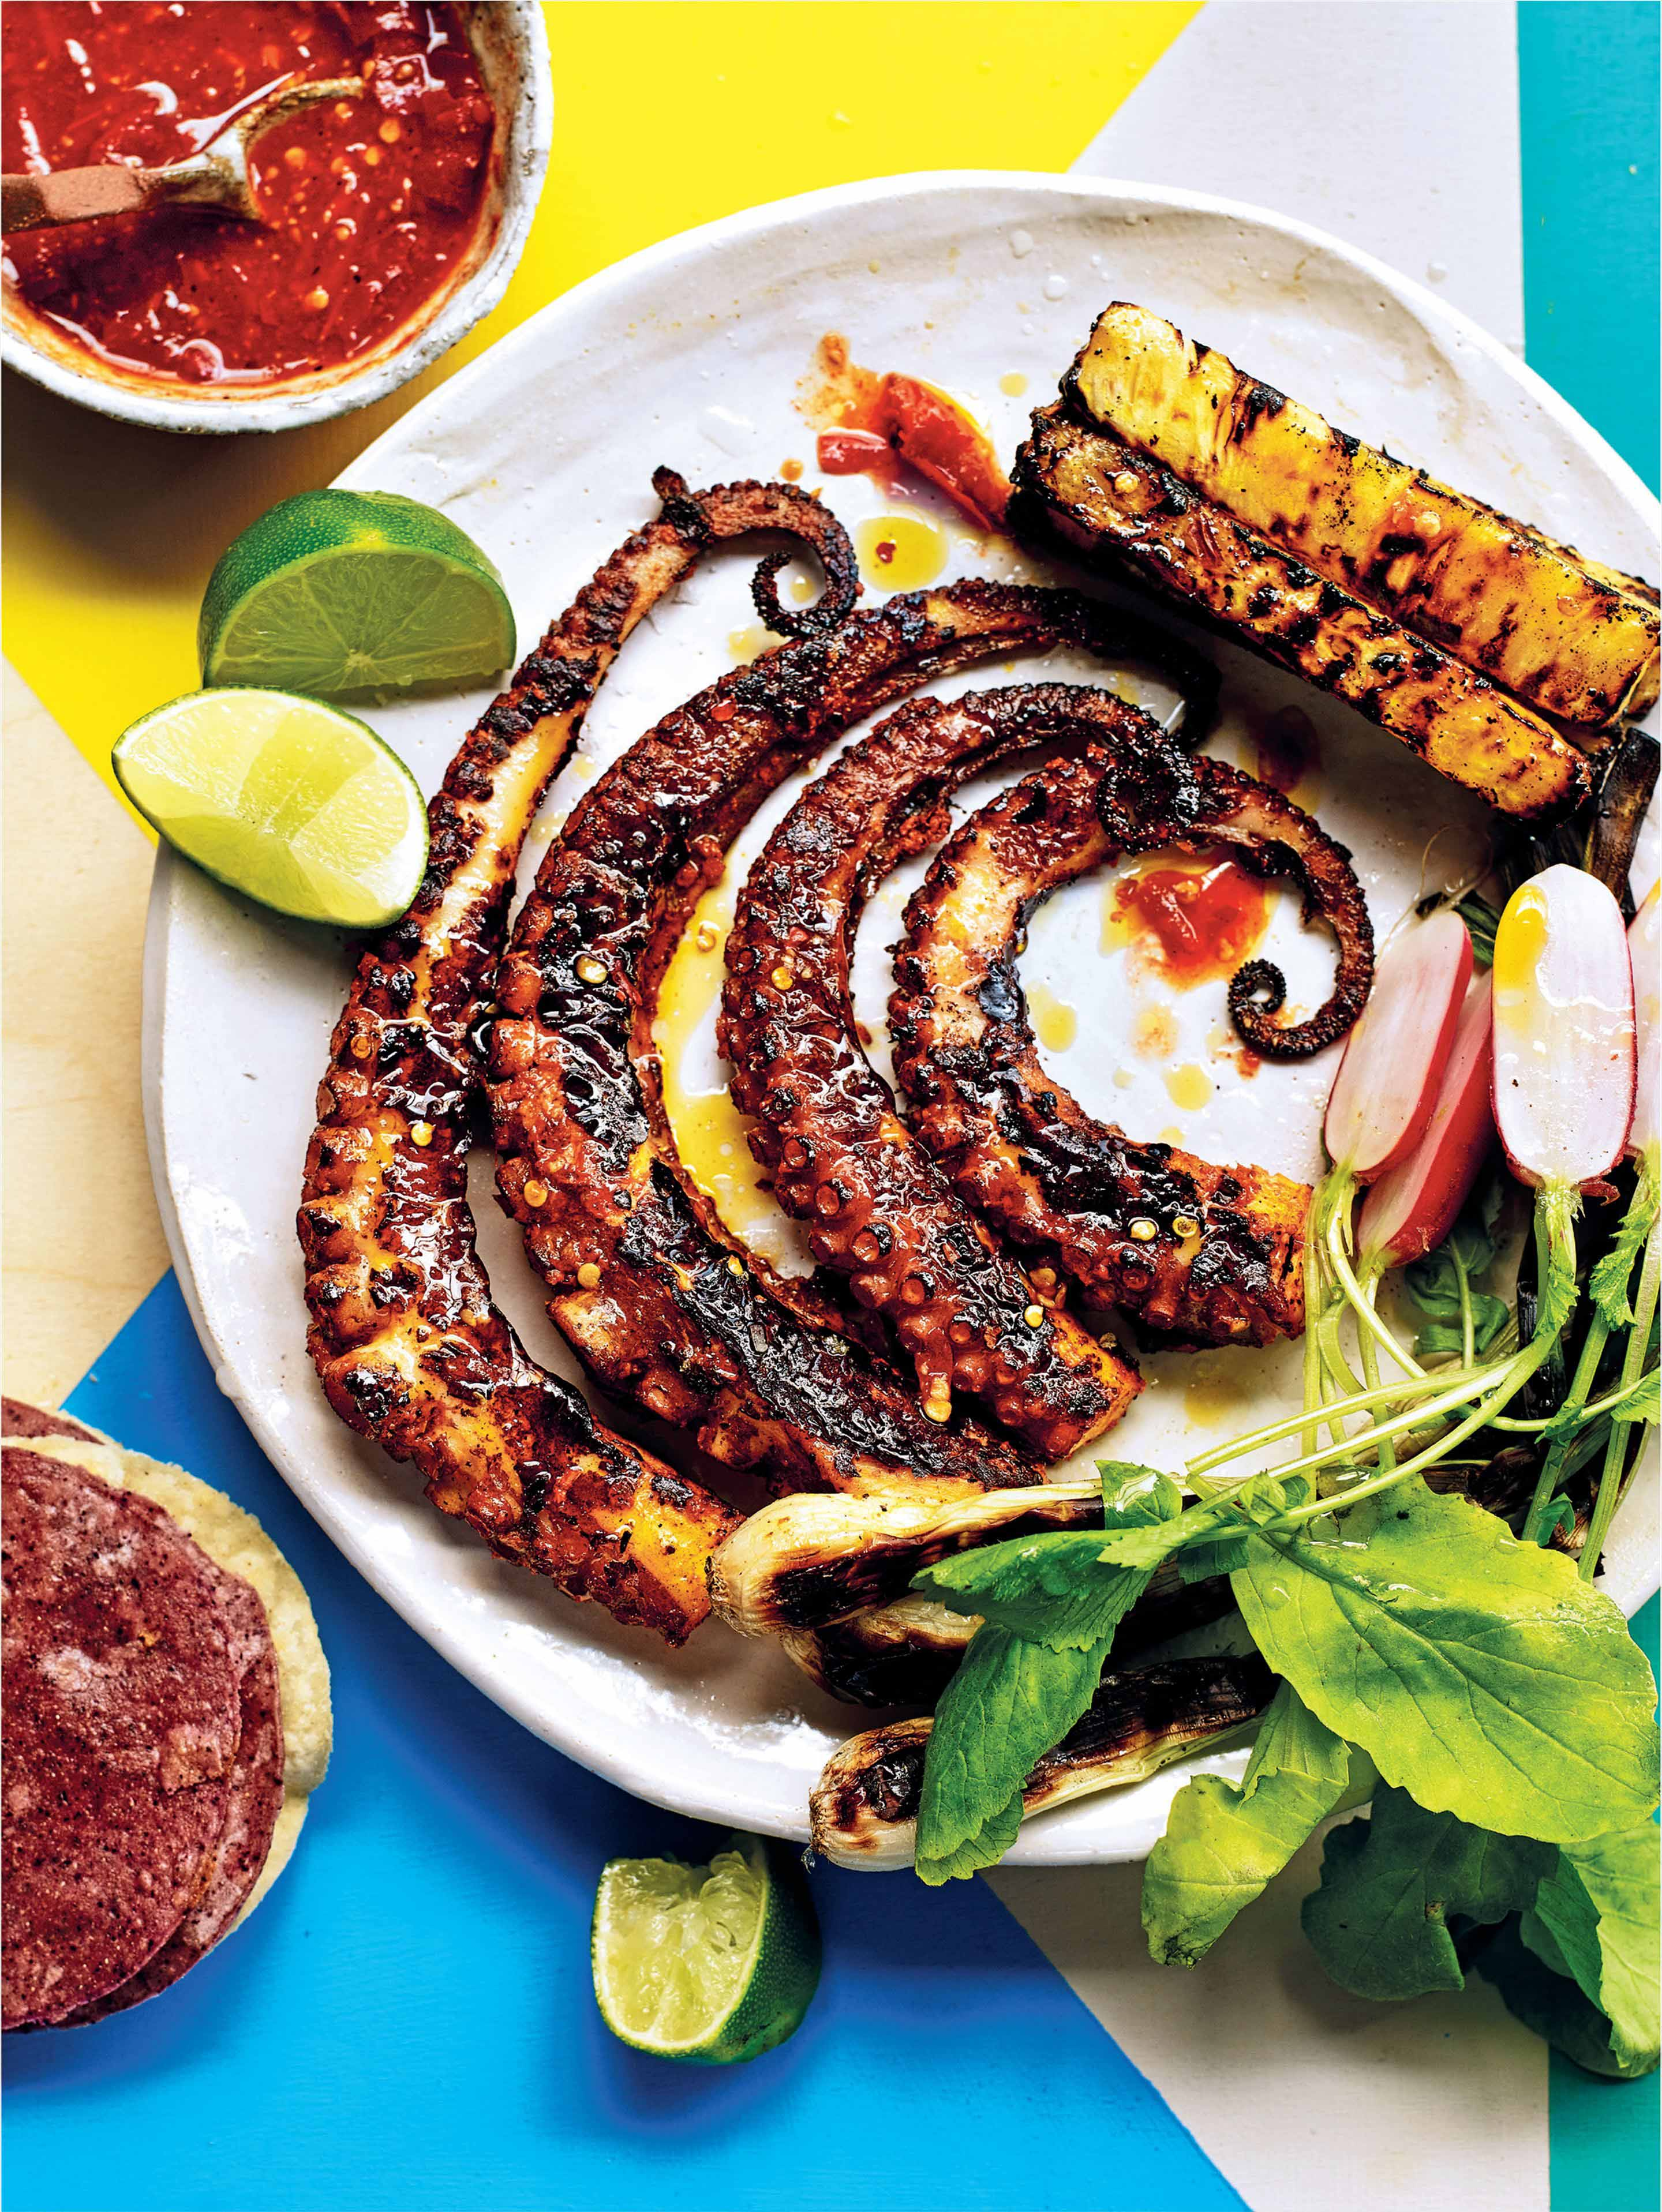 Octopus 'al pastor' & roasted pineapple